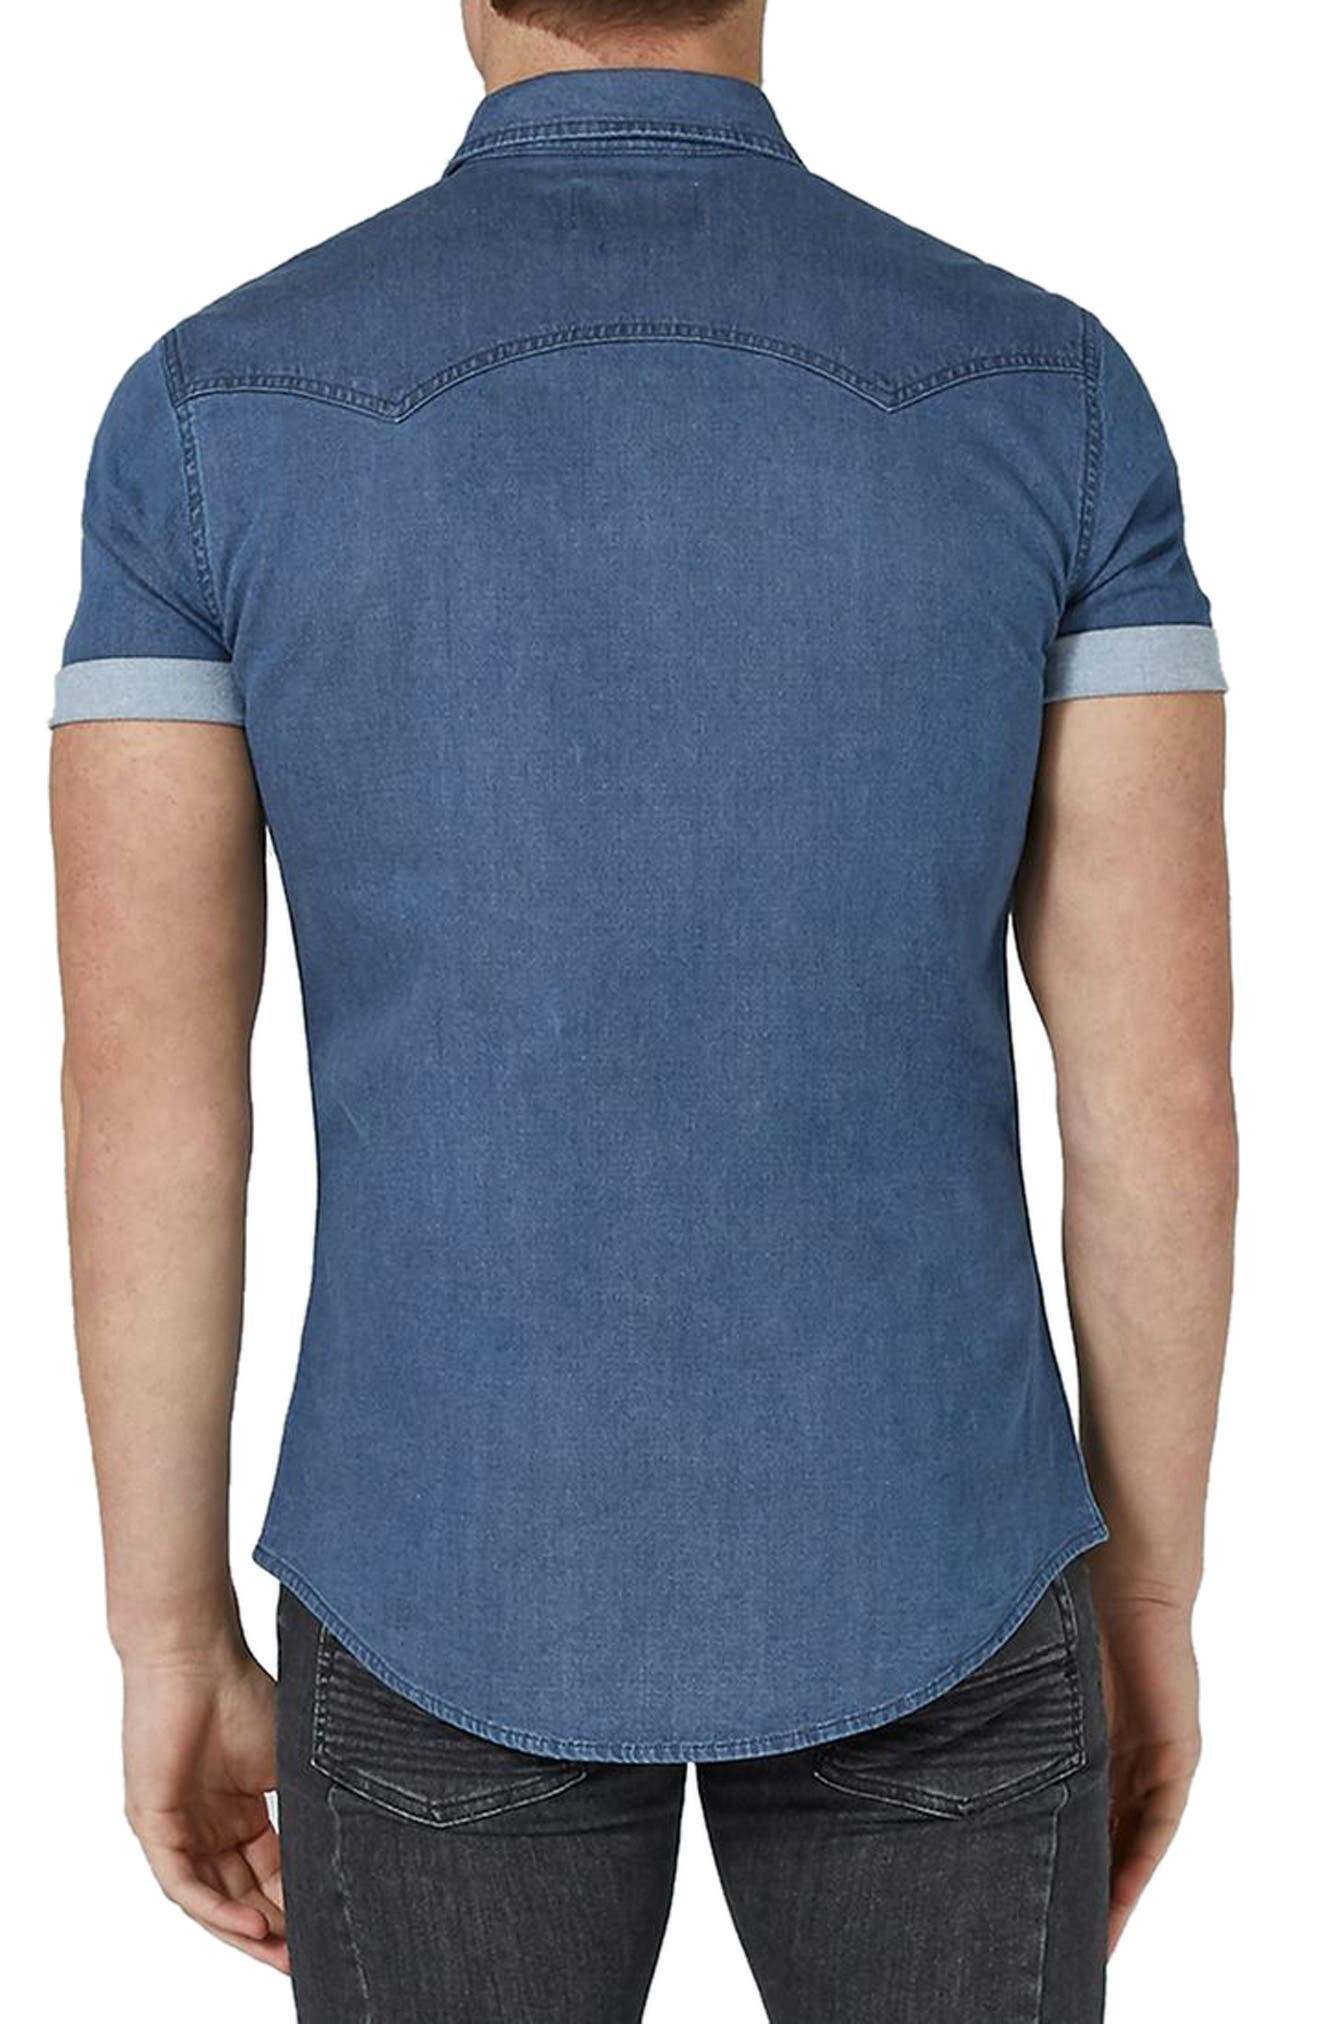 Muscle Fit Denim Shirt,                             Alternate thumbnail 3, color,                             Blue